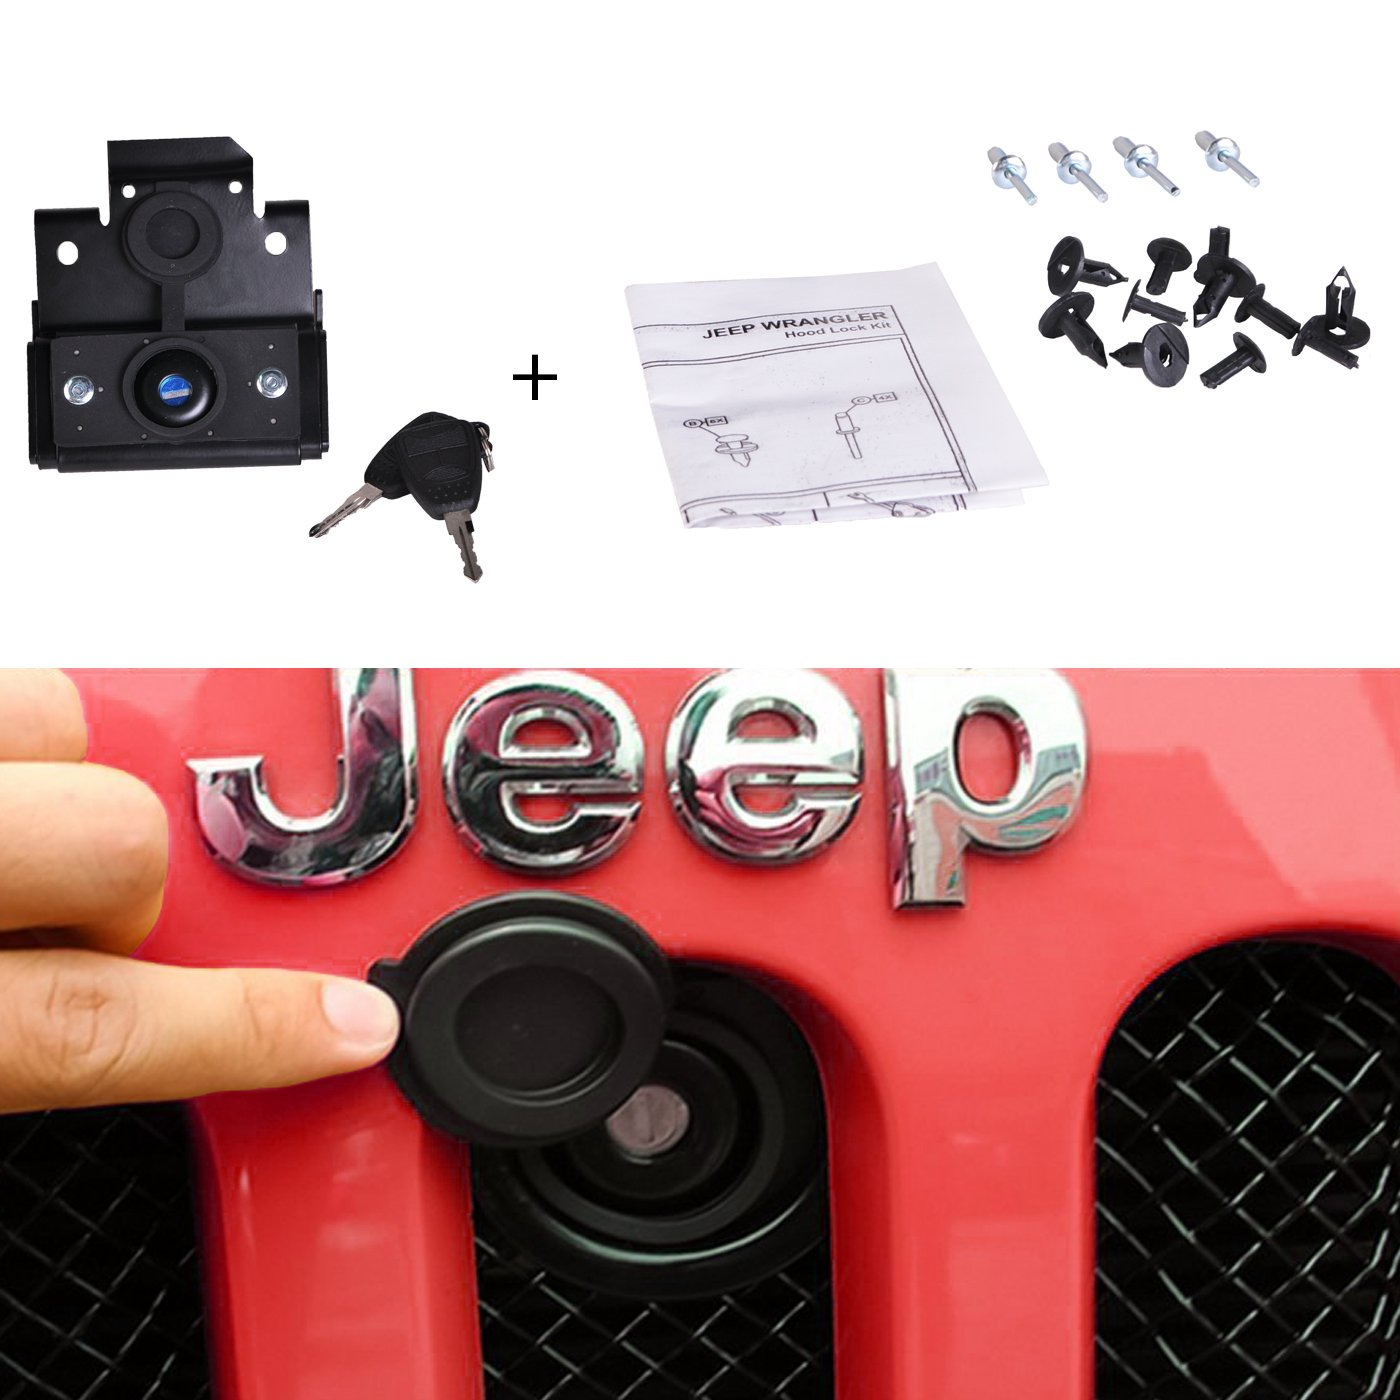 OMOTOR Off-Road Tailgate High Lift Jack Mount Bracket fit for Jeep Wrangler JK 2007 2008 2009 2010 2011 2012 2013 2014 2015 2016 2017 2018 (JK Tailgate Hi-Lift Jack Mount Bracket)